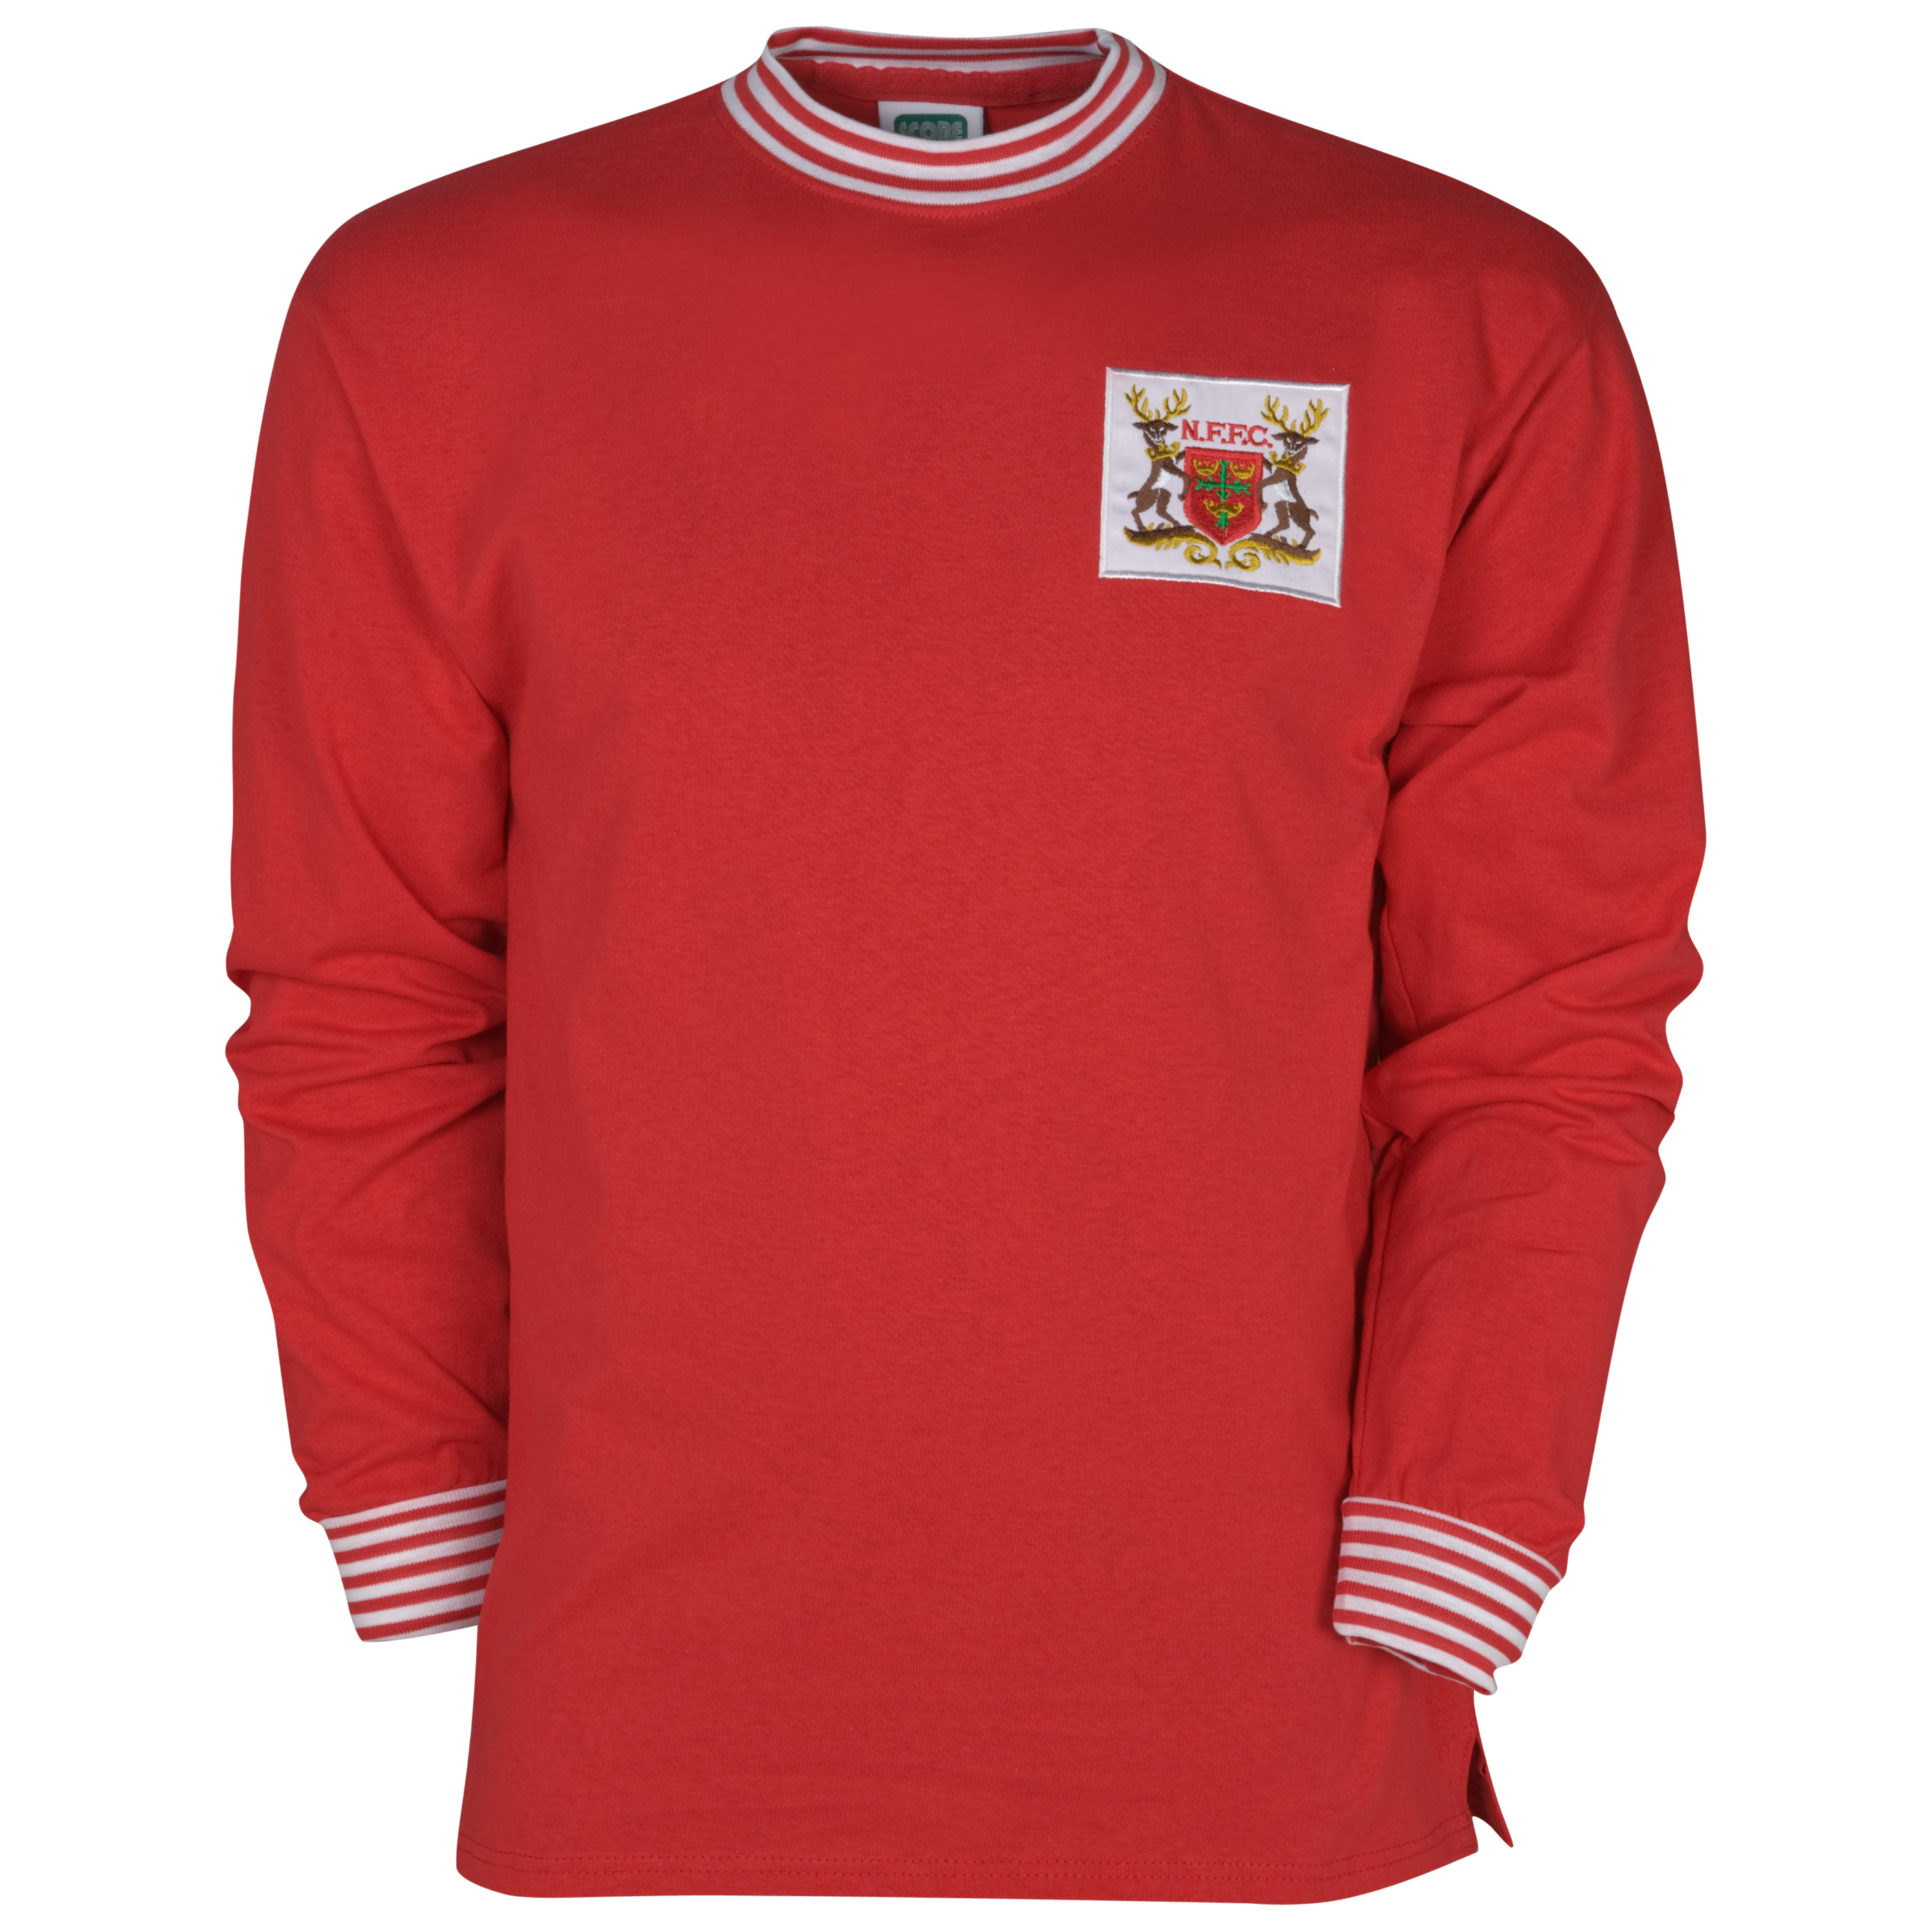 Nottingham Forest 1966 Home Shirt Long Sleeved Red